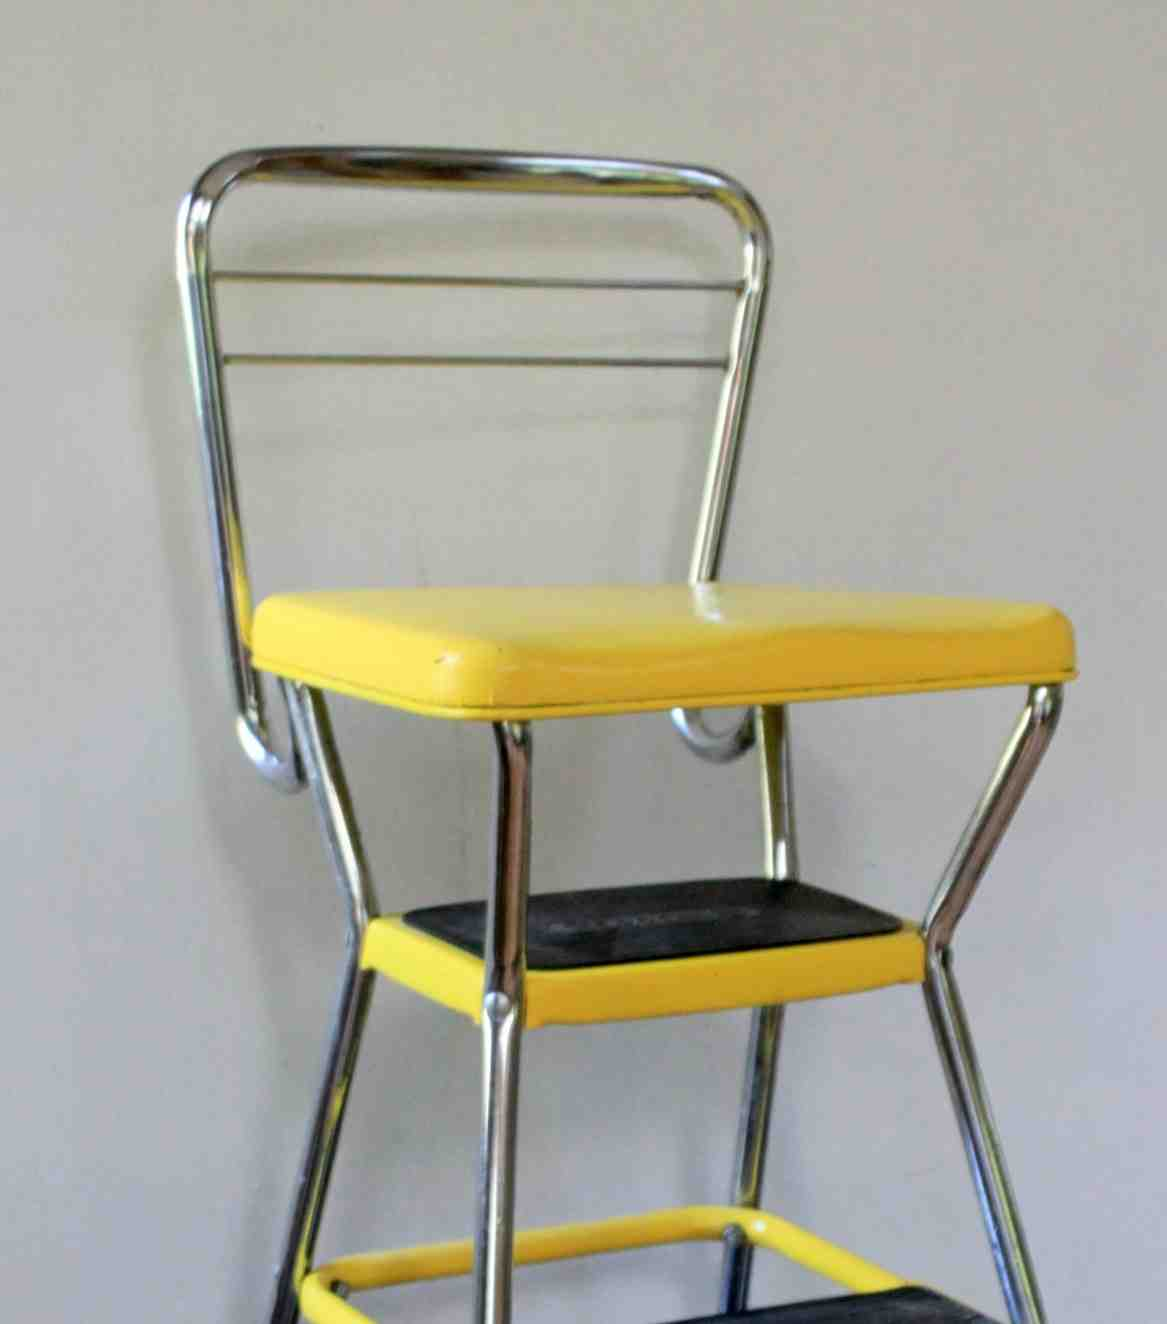 Vintage Cosco Step Stool Chair Decor Ideasdecor Ideas